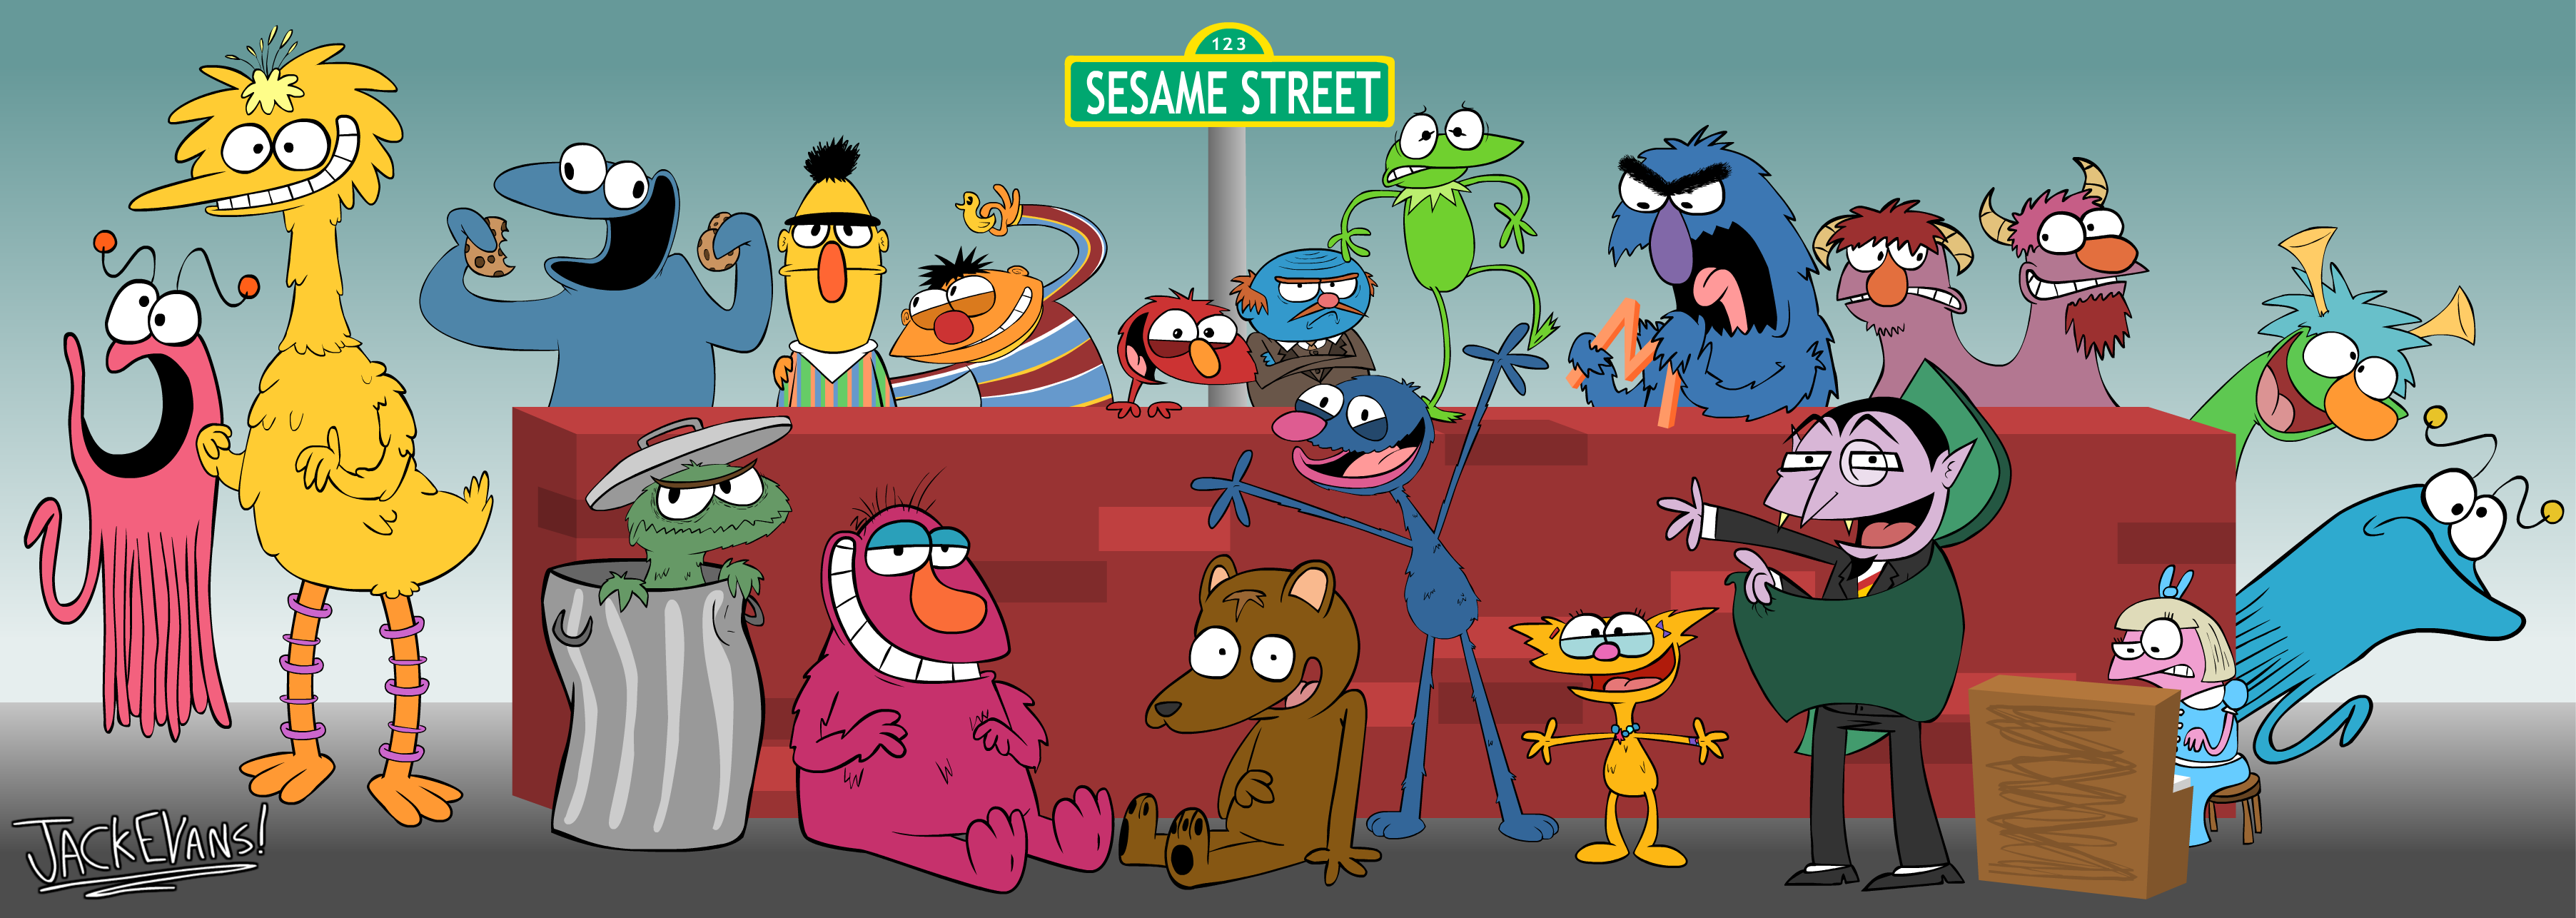 Cartoon Characters Named Zoe : Directions to sesame street by moon manunit on deviantart